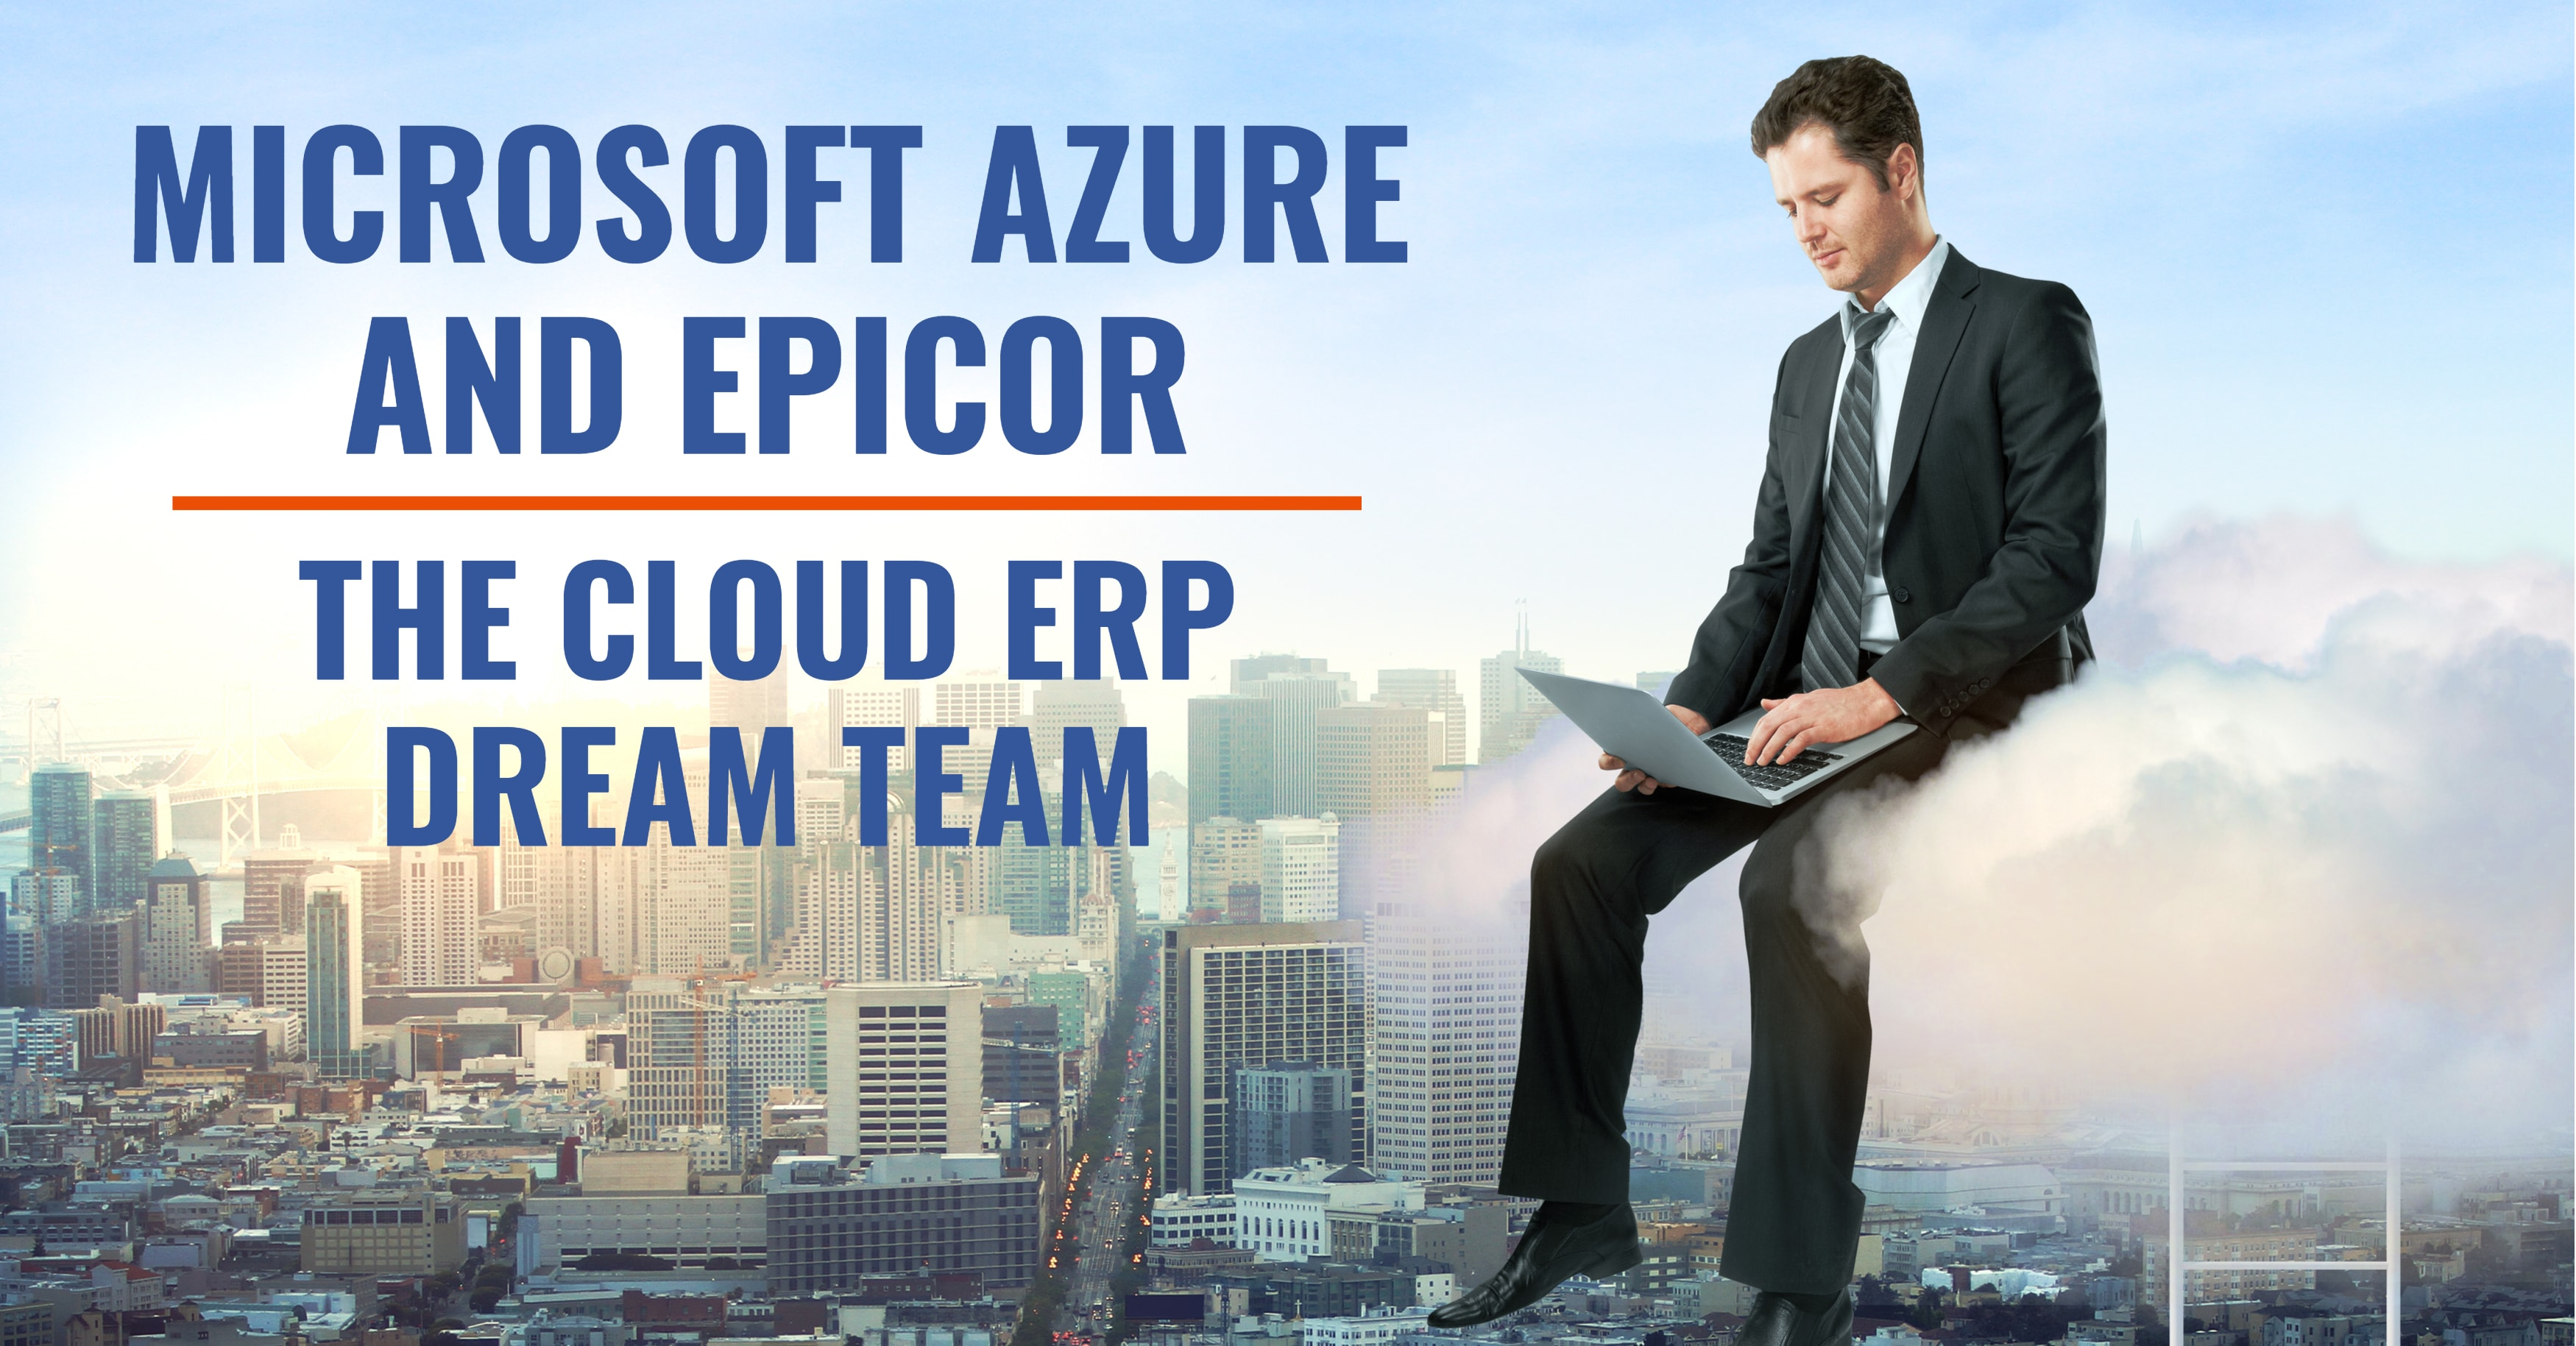 Microsoft Azure and Epicor: The Cloud ERP Dream Team